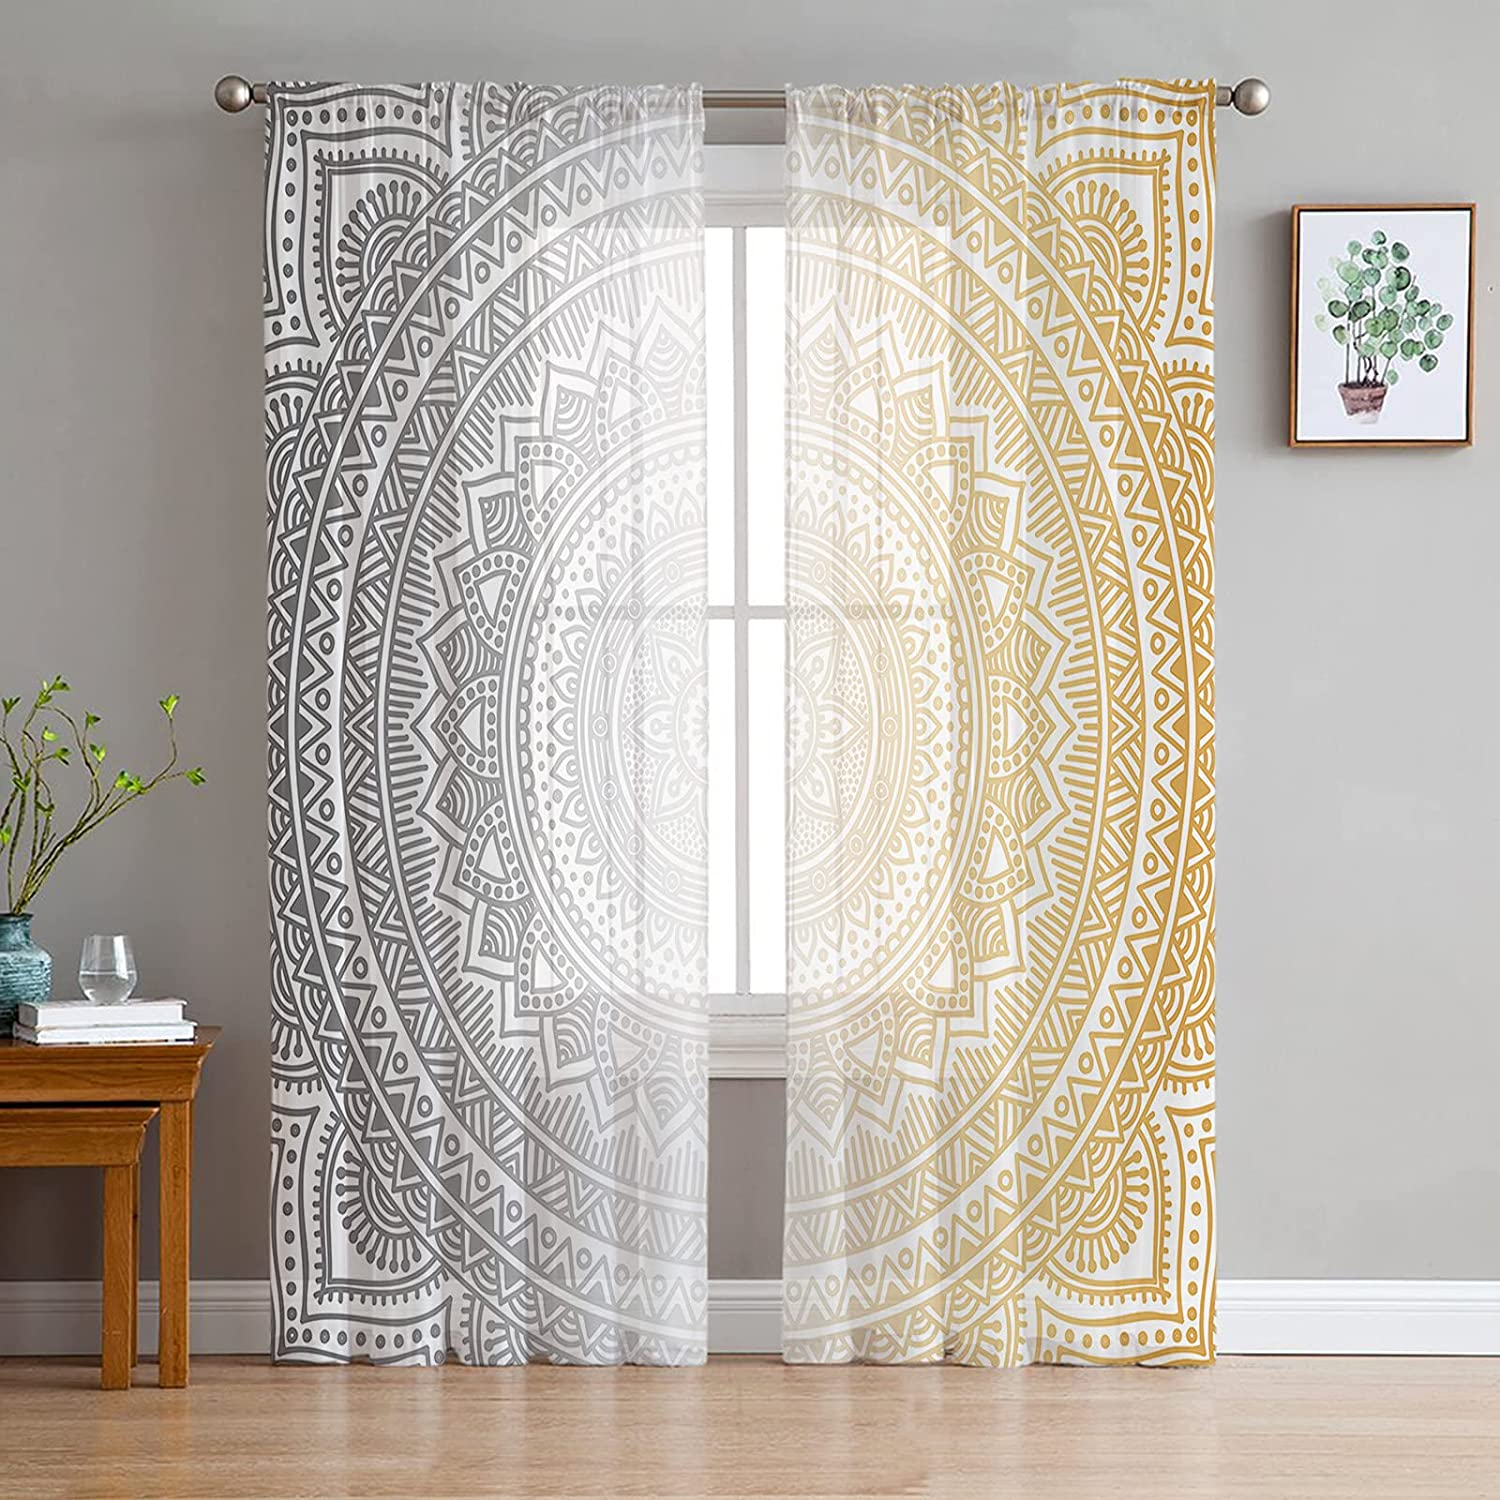 Sheer Some reservation Voile Chiffon Window Curtains Wrinkle Fre Touch Spring new work with Soft